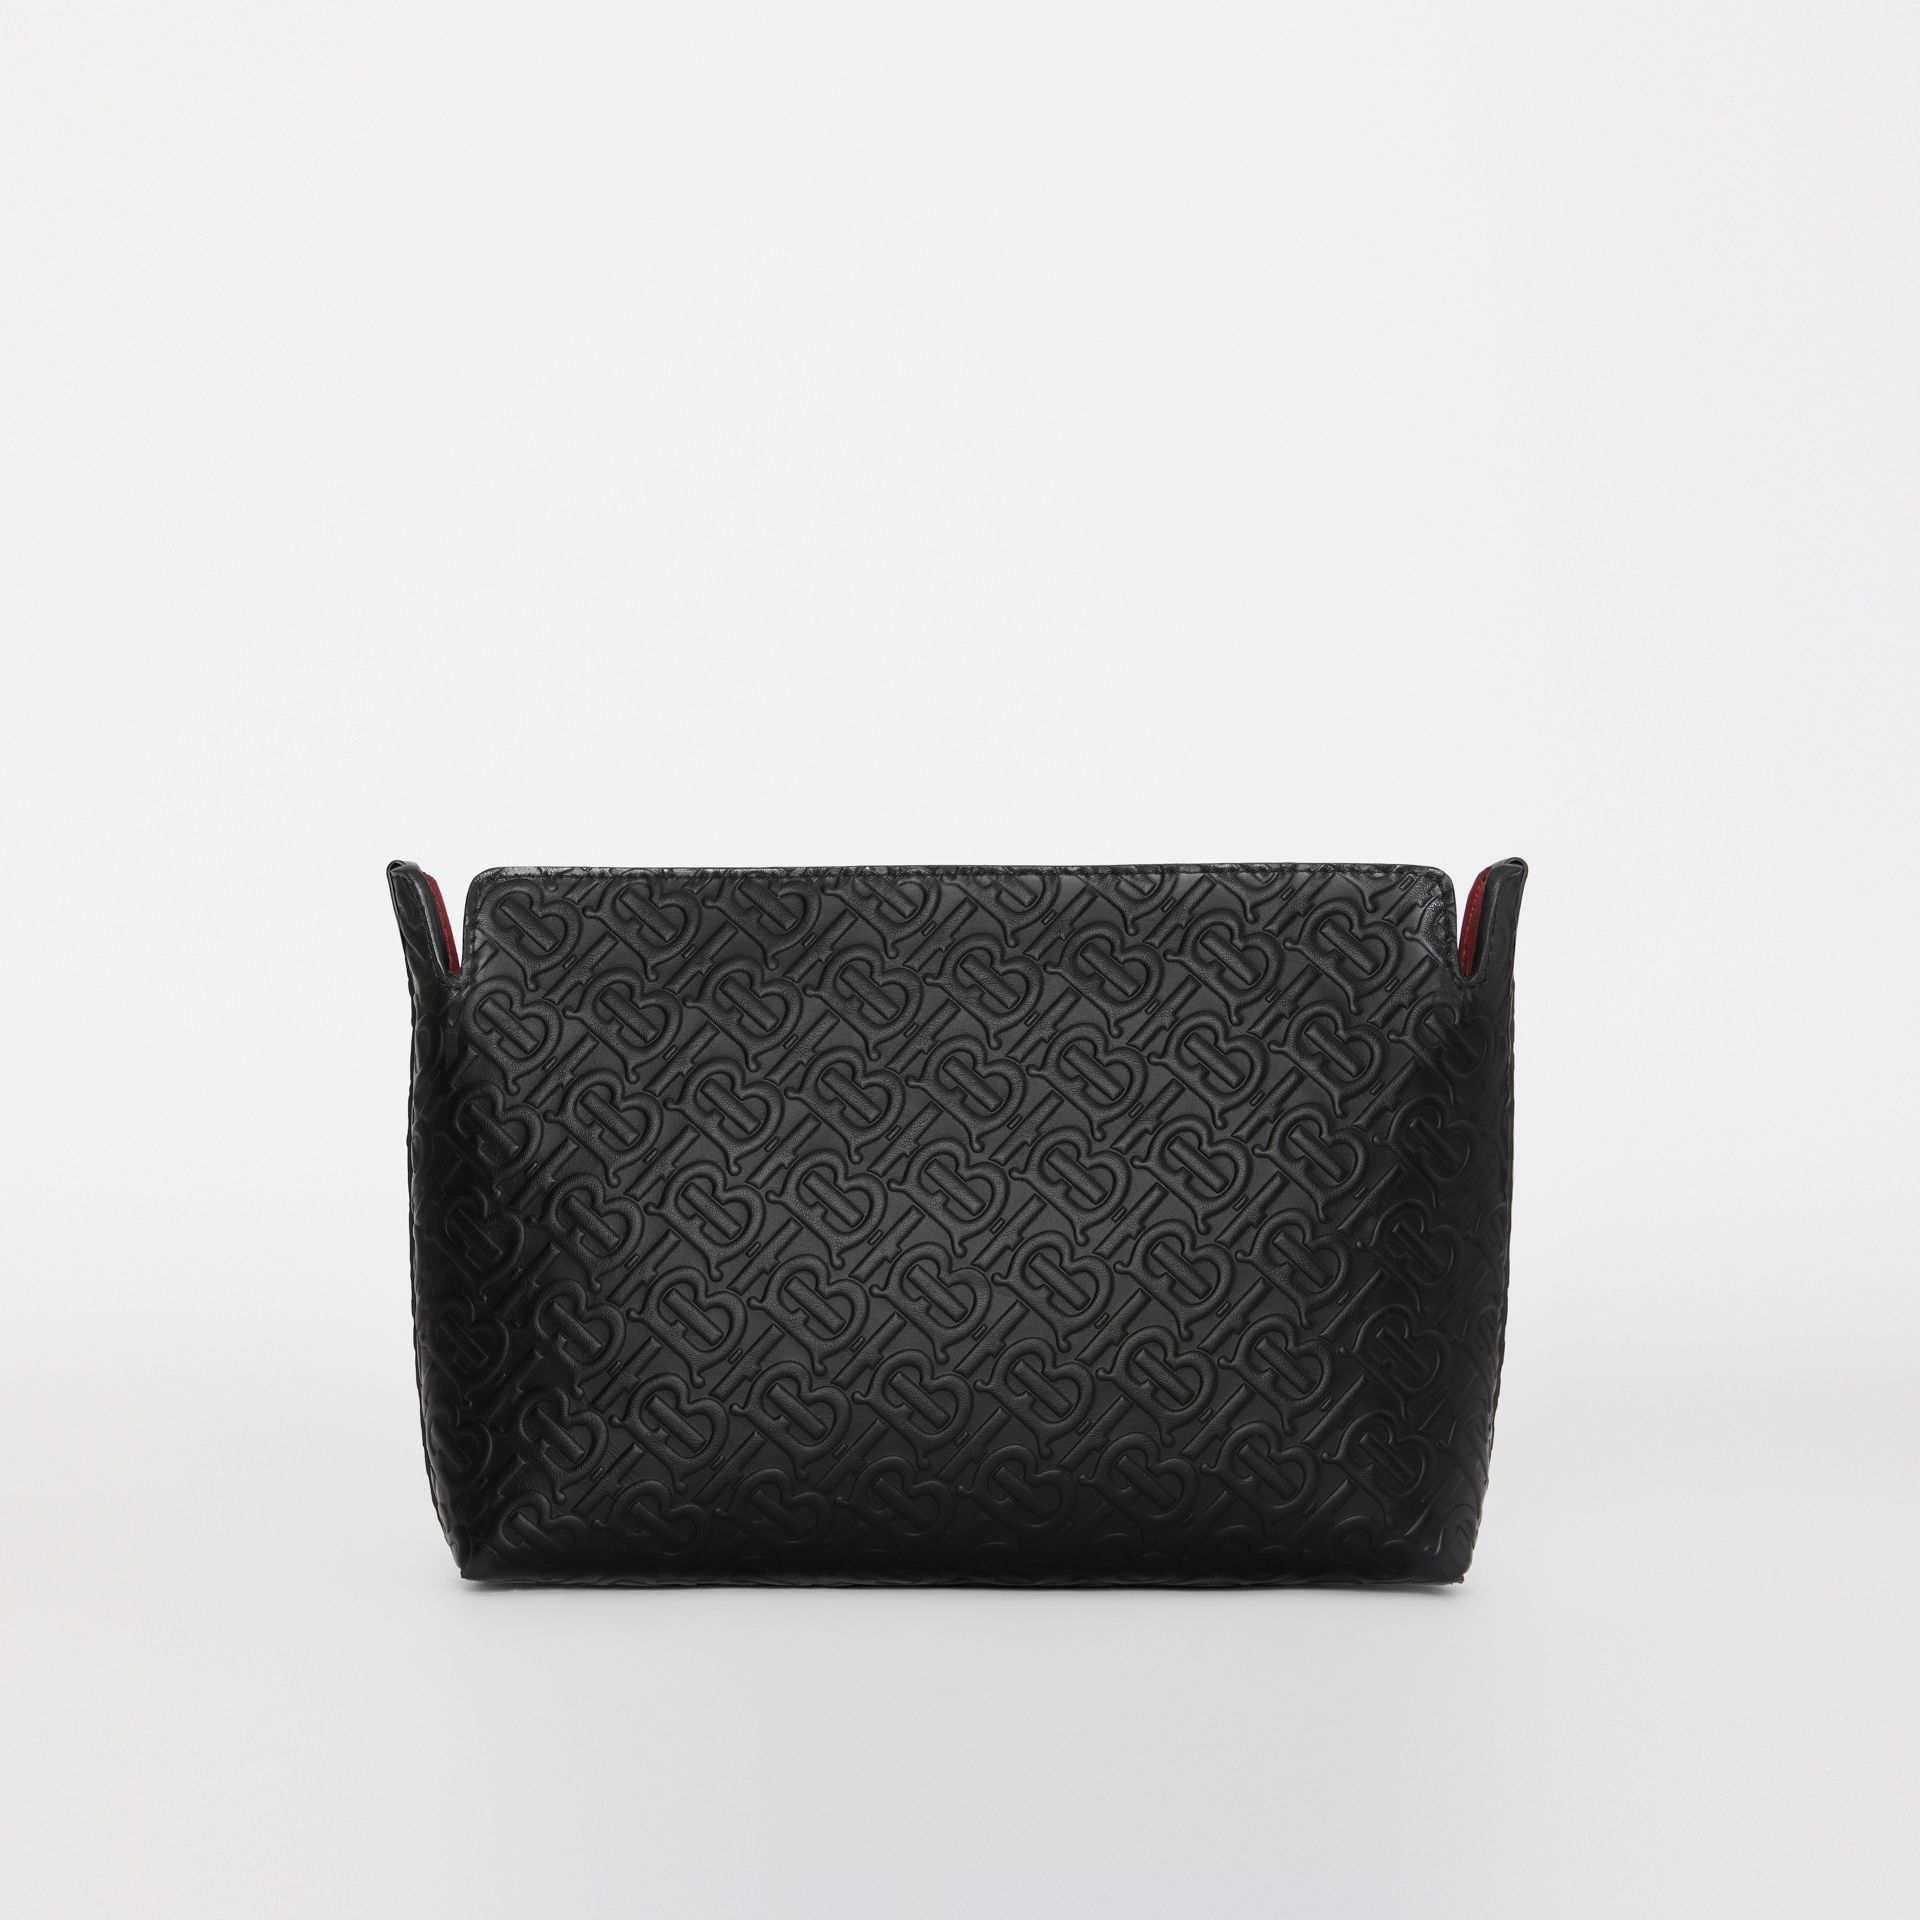 Medium Monogram Leather Clutch in Black - Women | Burberry - gallery image 0